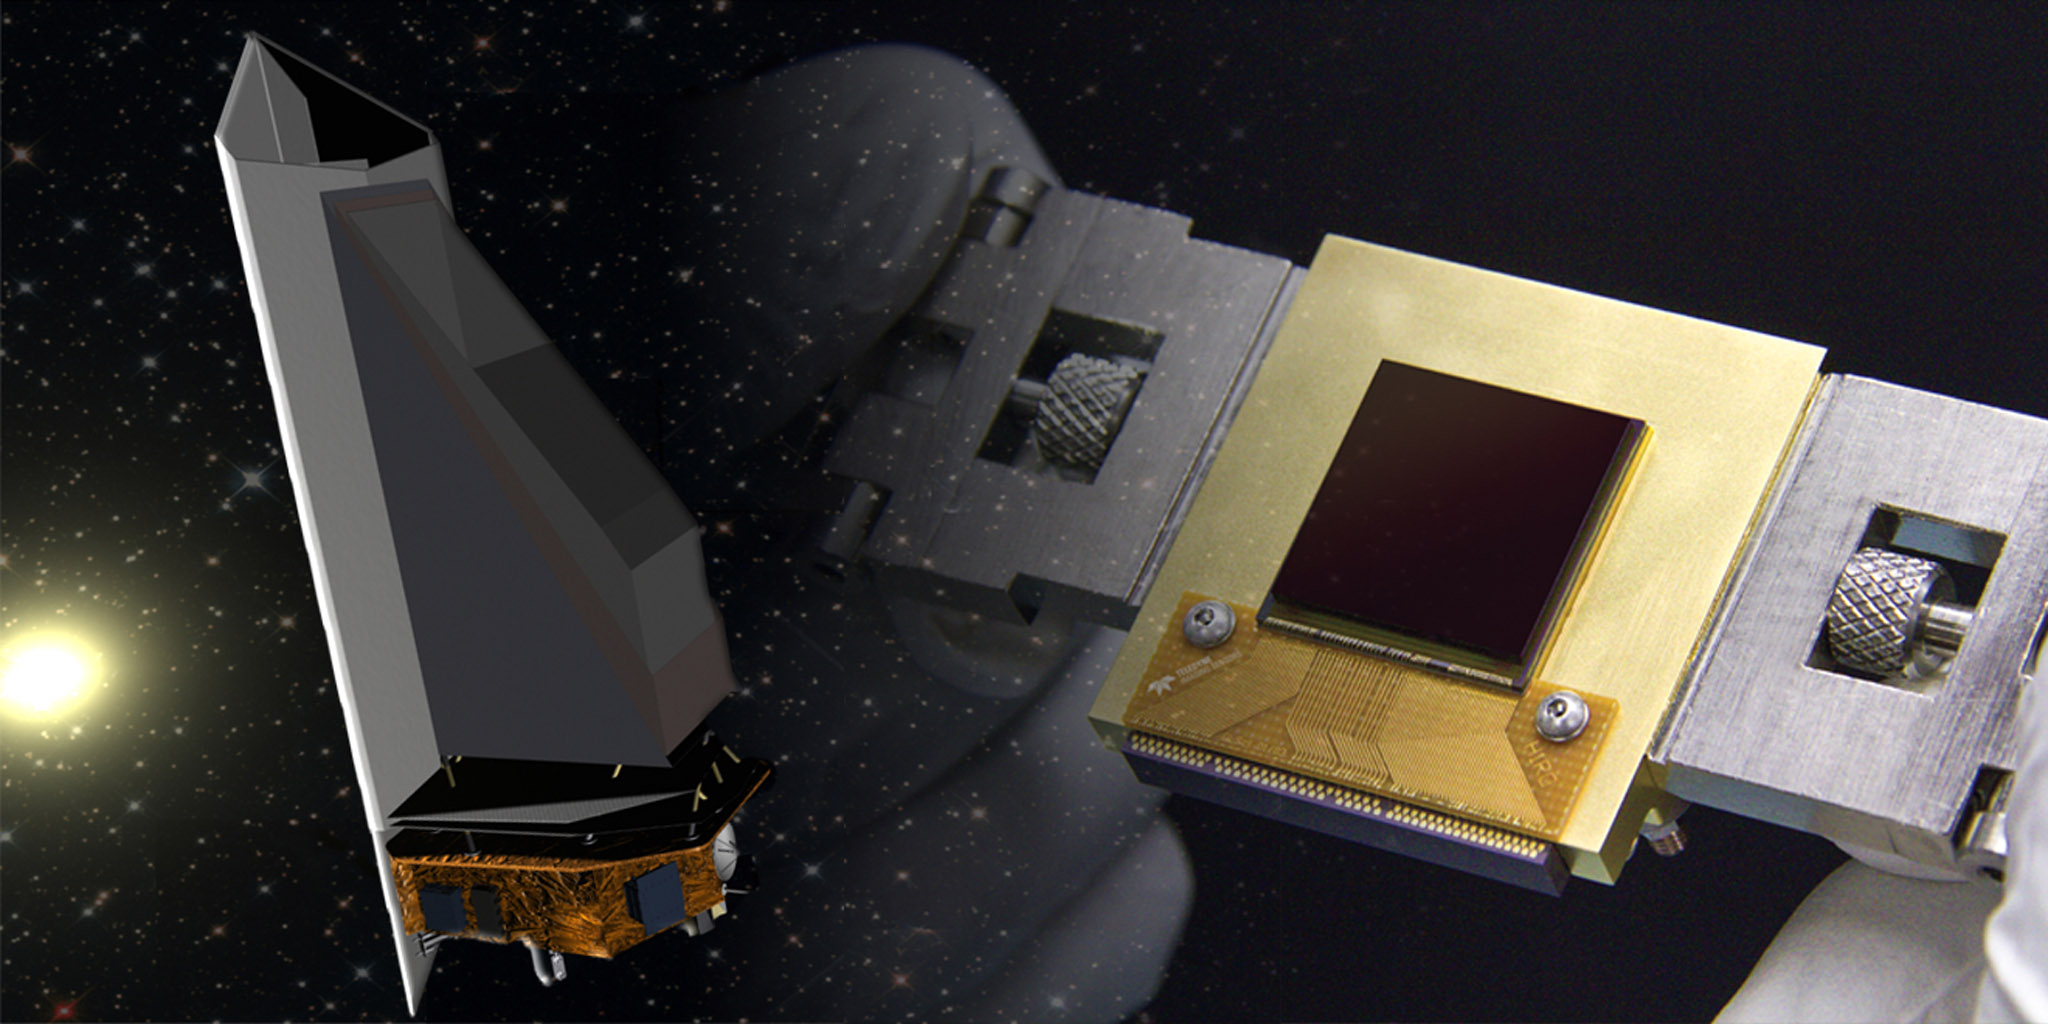 The NEOCam sensor (right) is the lynchpin for the proposed Near Earth Object Camera, or NEOCam, space mission (left).